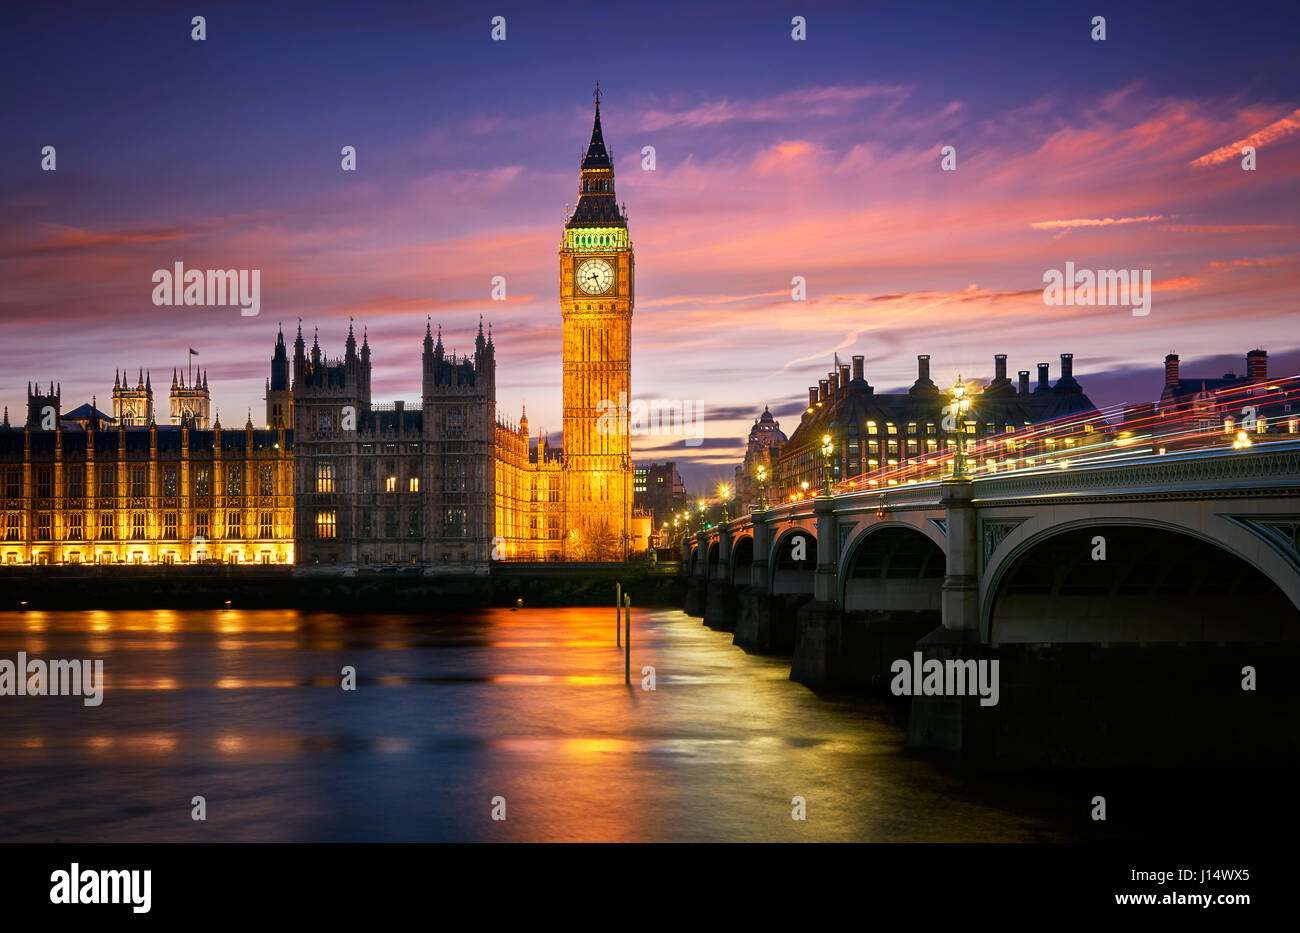 The Elizabeth Tower or Big Ben is one of the most known monuments in the world. It belongs to the Palace of Westminster. - Stock Image